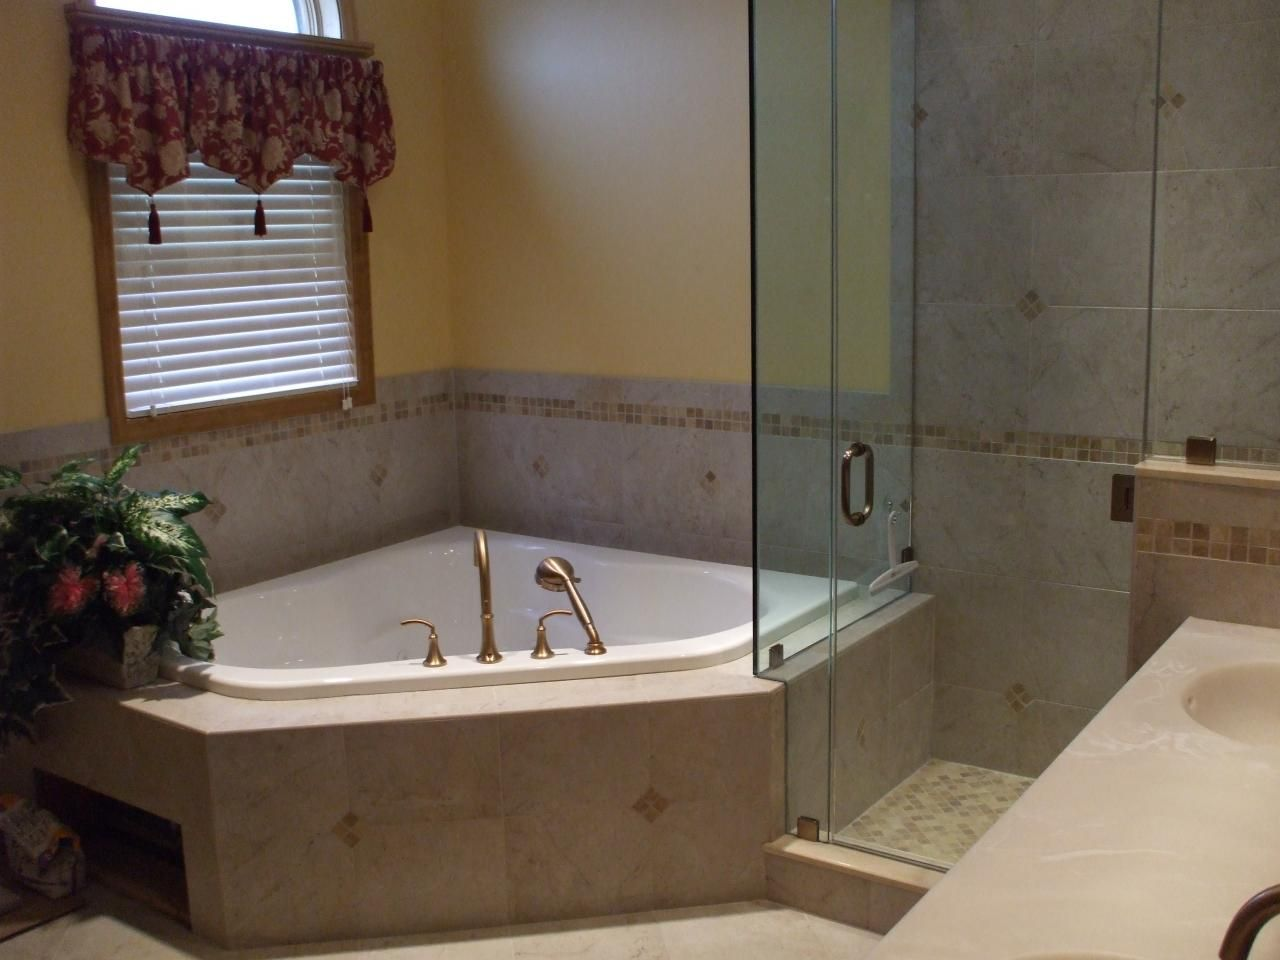 find bath rgb us bathing crop corner products perfect soaking tub bathroom kohler browse your n whirlpool bathtubs